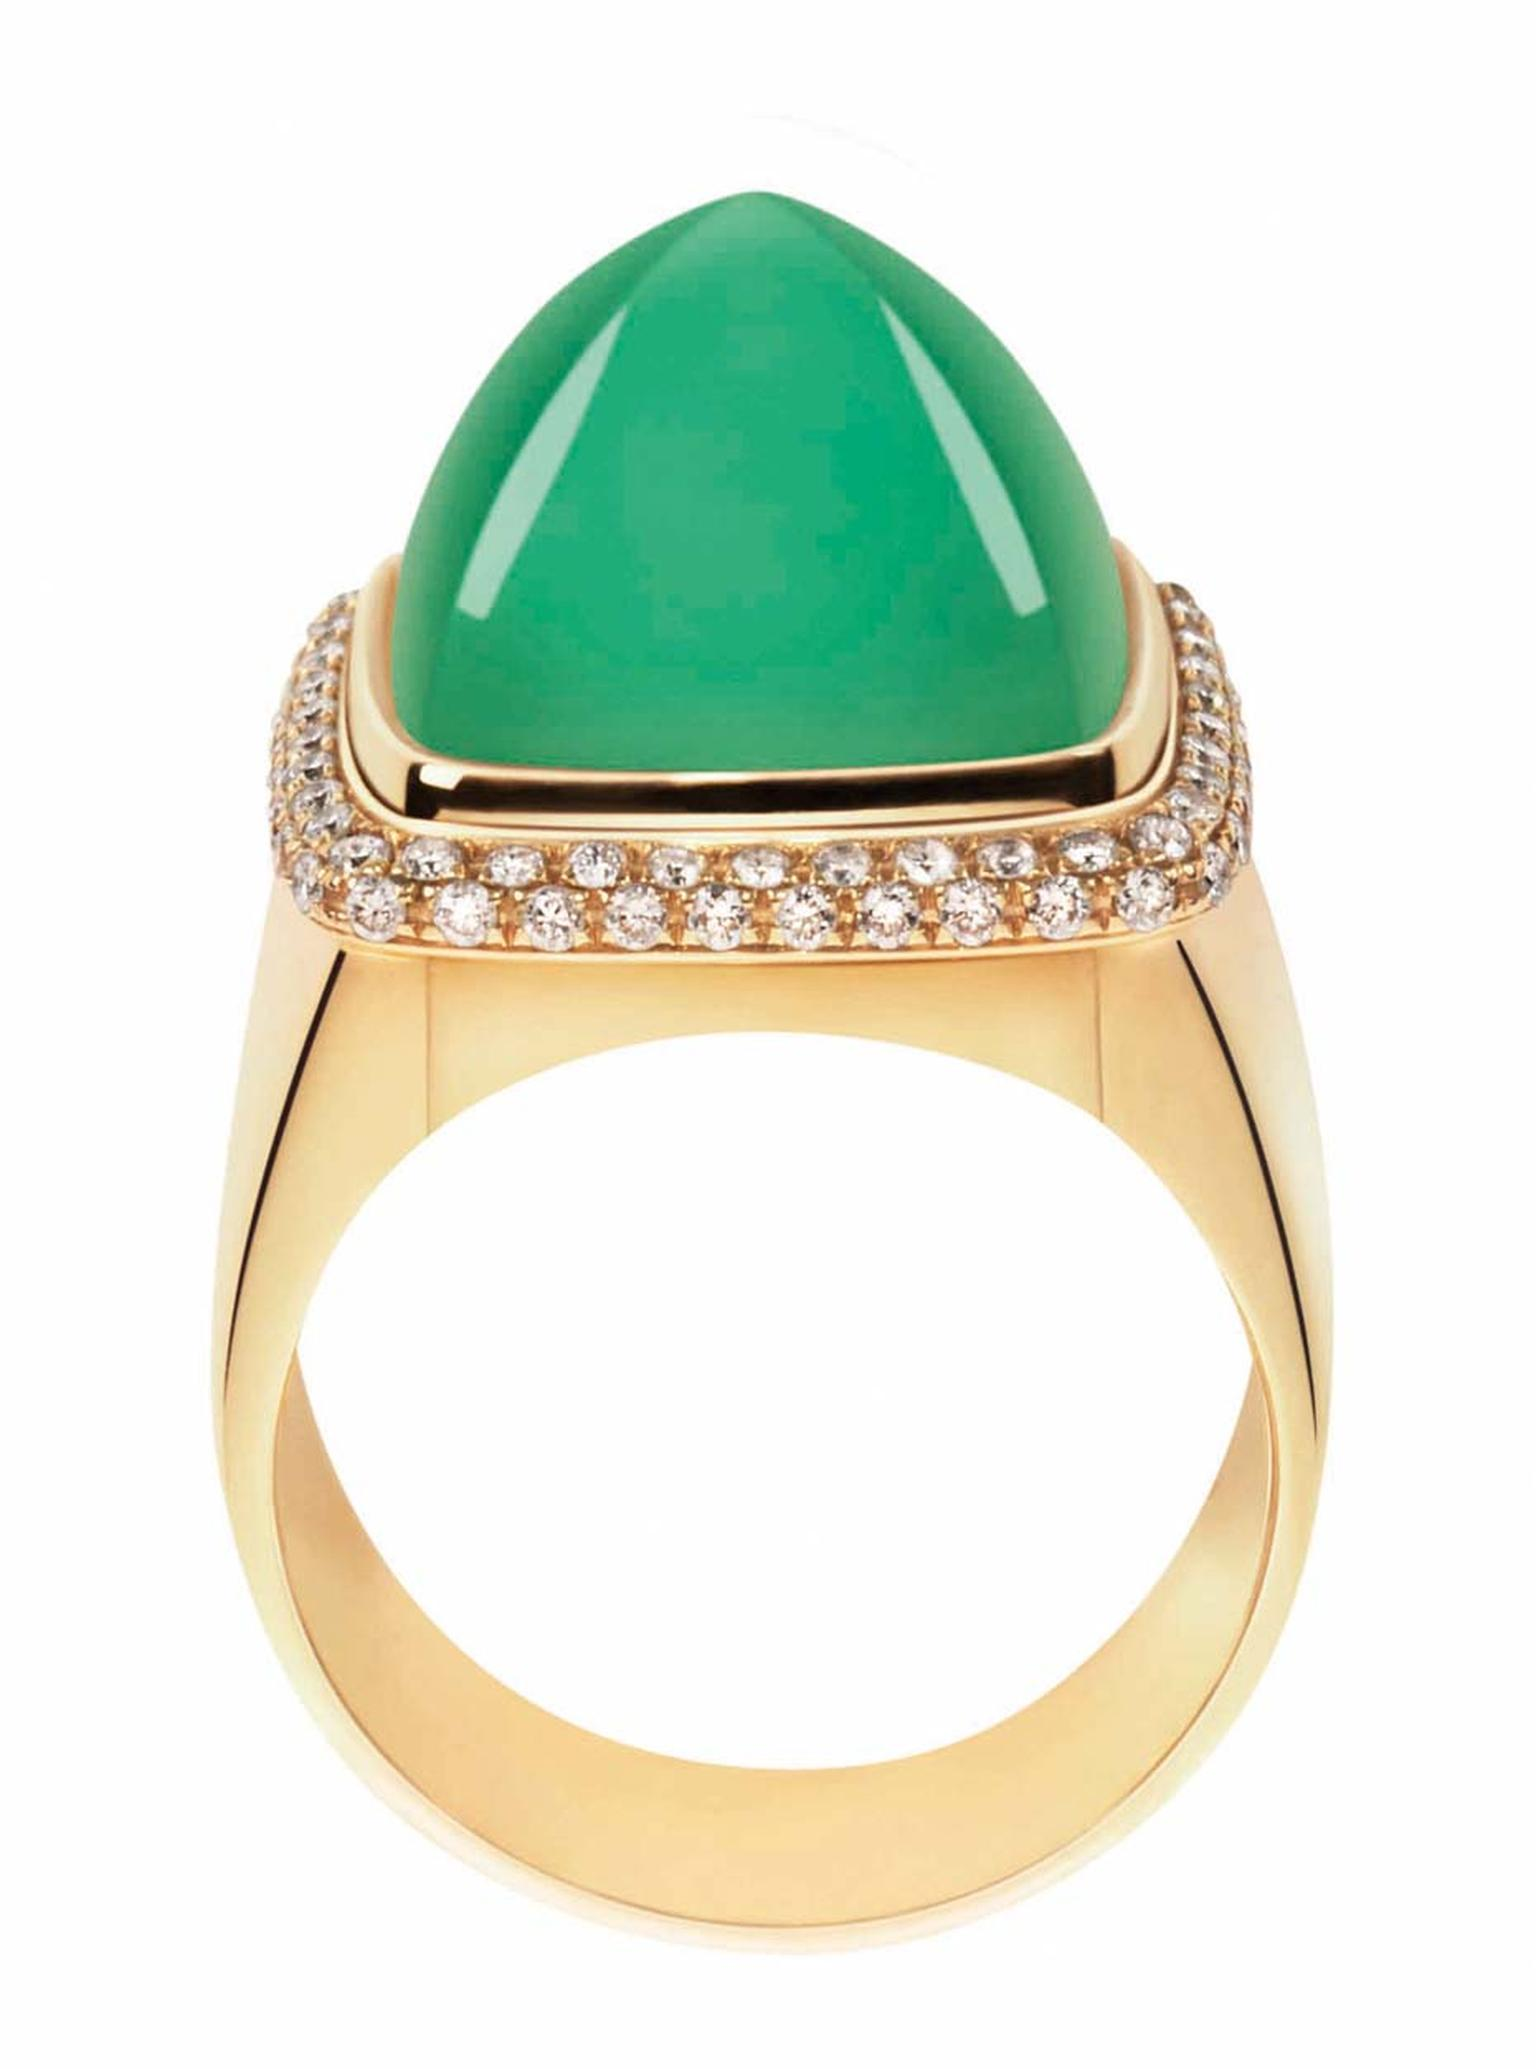 FRED Pain de Sucre ring in gold and diamonds with an interchangeable cabochon chrysoprase.